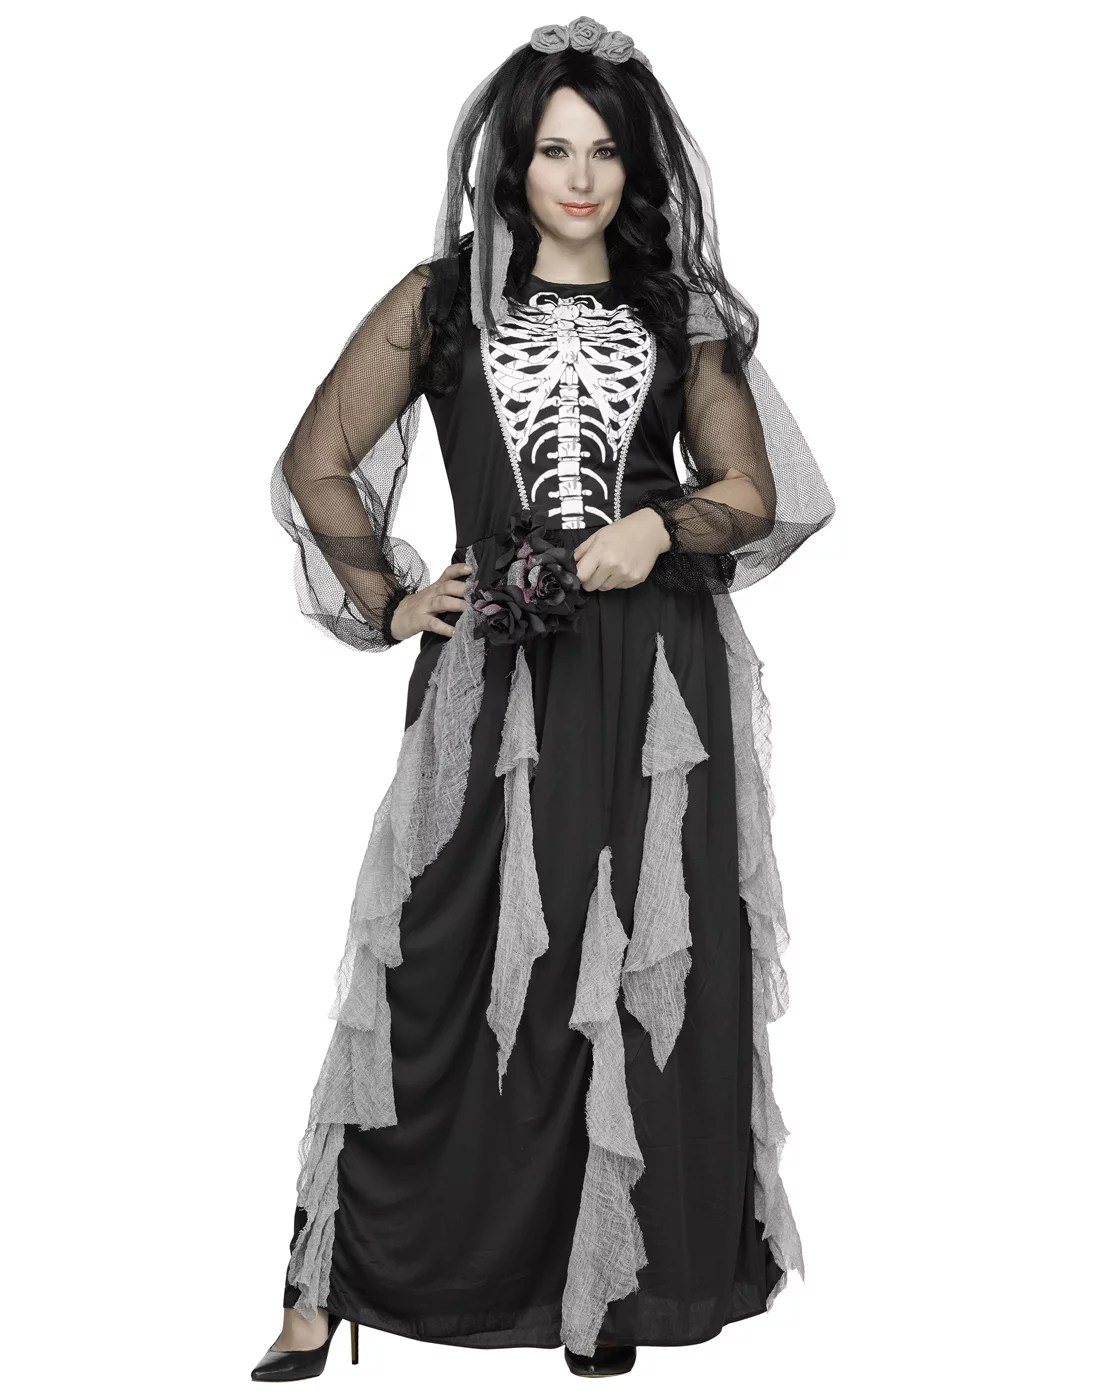 Every year, there's that one superhero film, hit tv show or viral meme that inspires everyone's costume ideas when halloween rolls around. Skeleton Bride Womens Plus Size Corpse Bride Halloween Costume Gown 2x Walmart Com Walmart Com